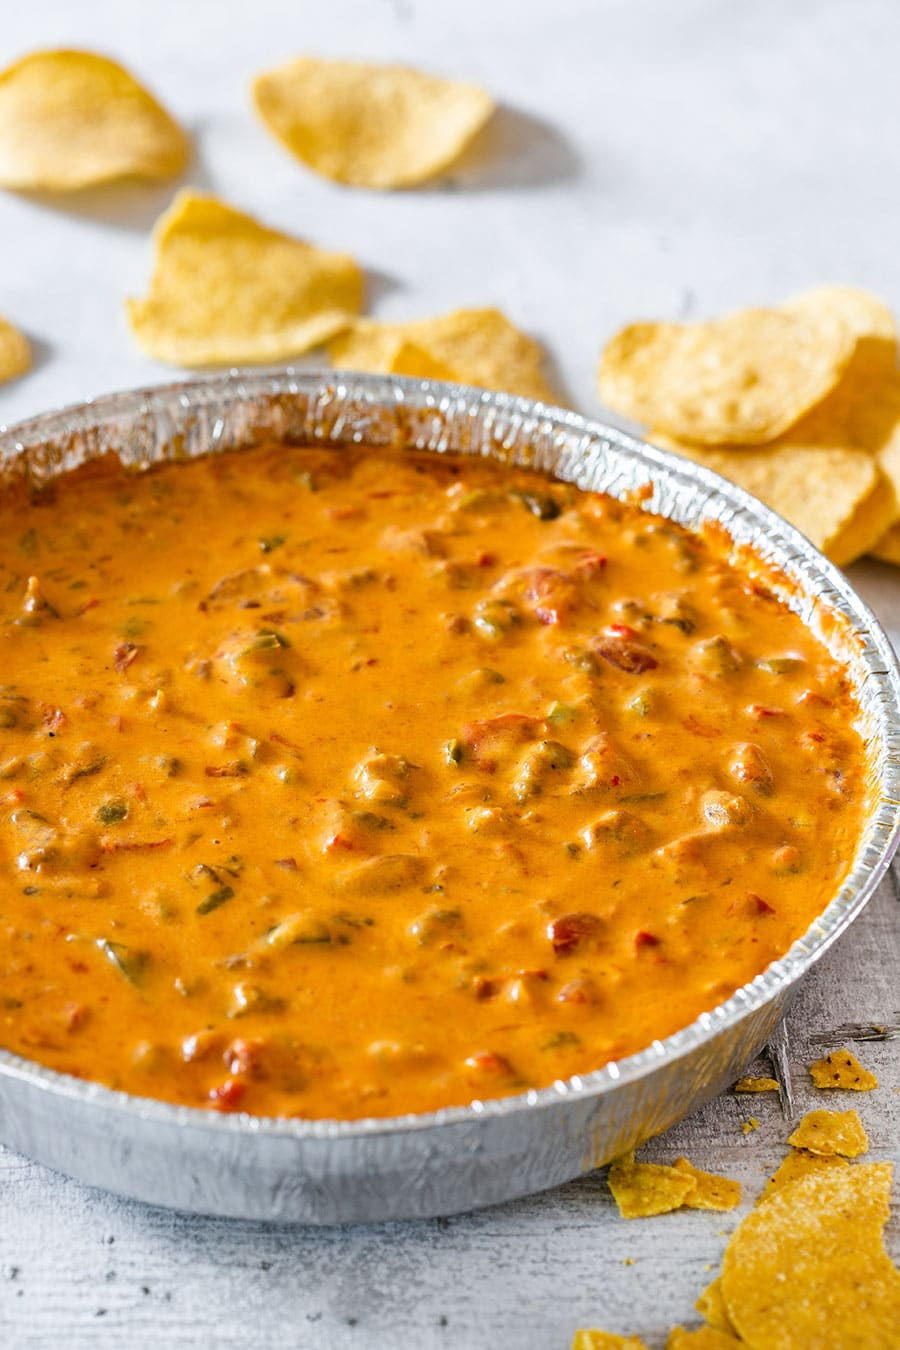 Smoked queso on an aluminium foil pan.